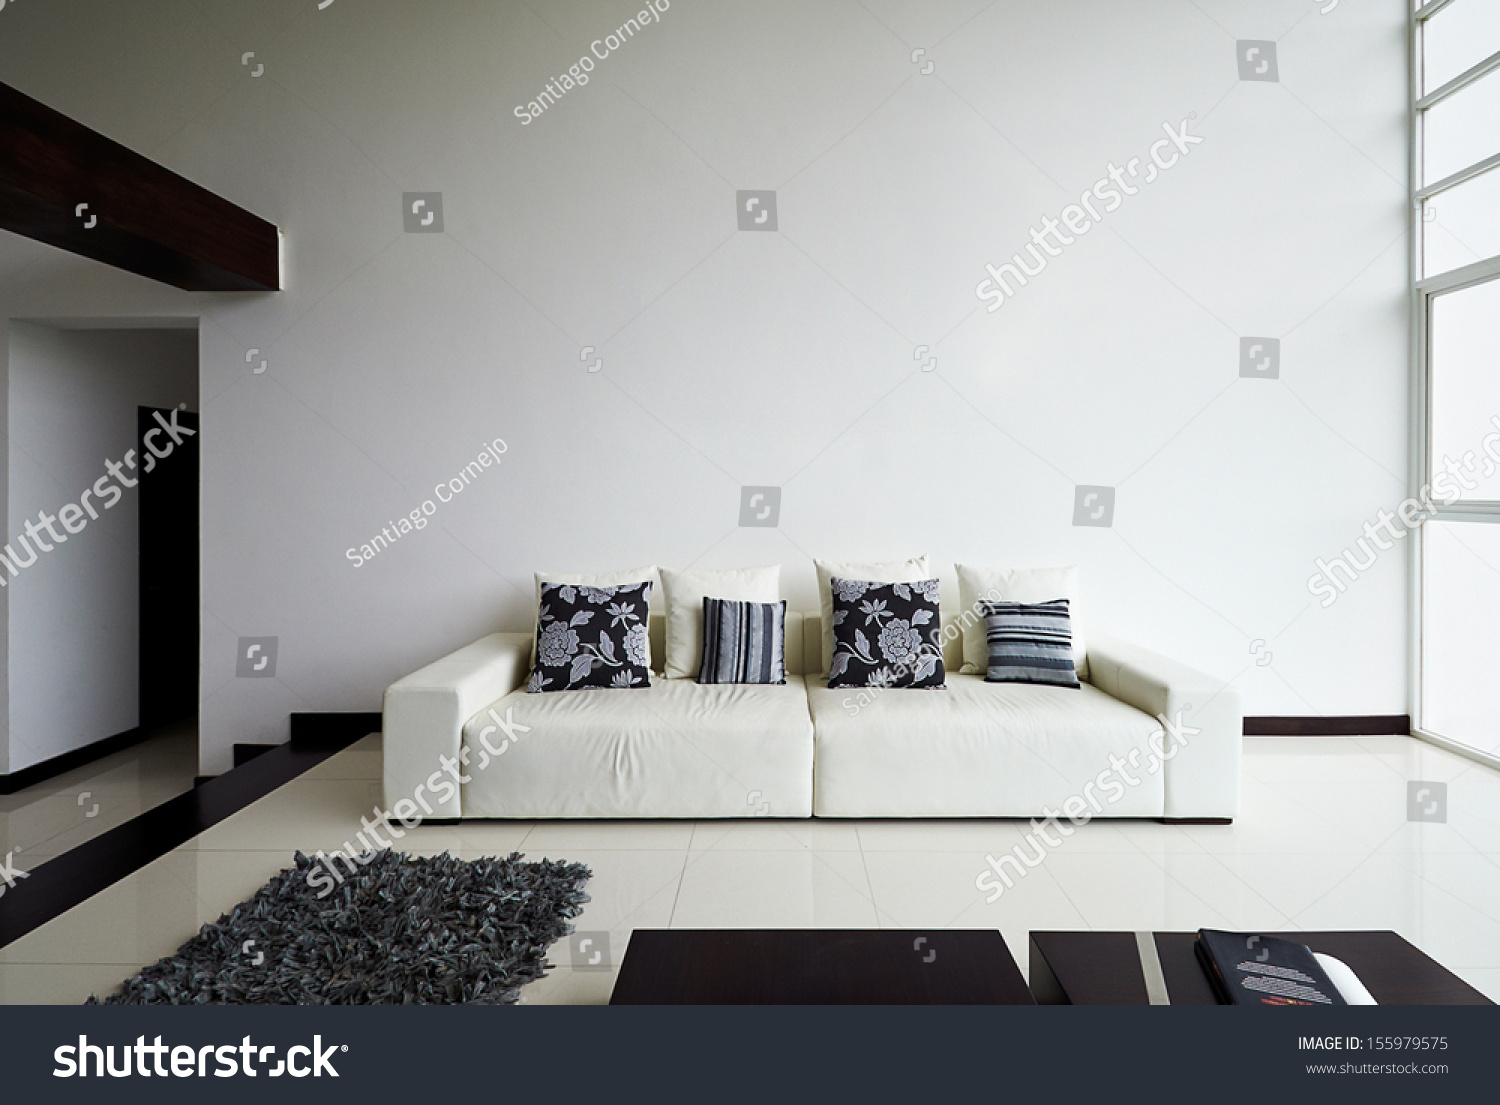 Interior Design Series Modern Living Room Stock Photo (Royalty Free ...